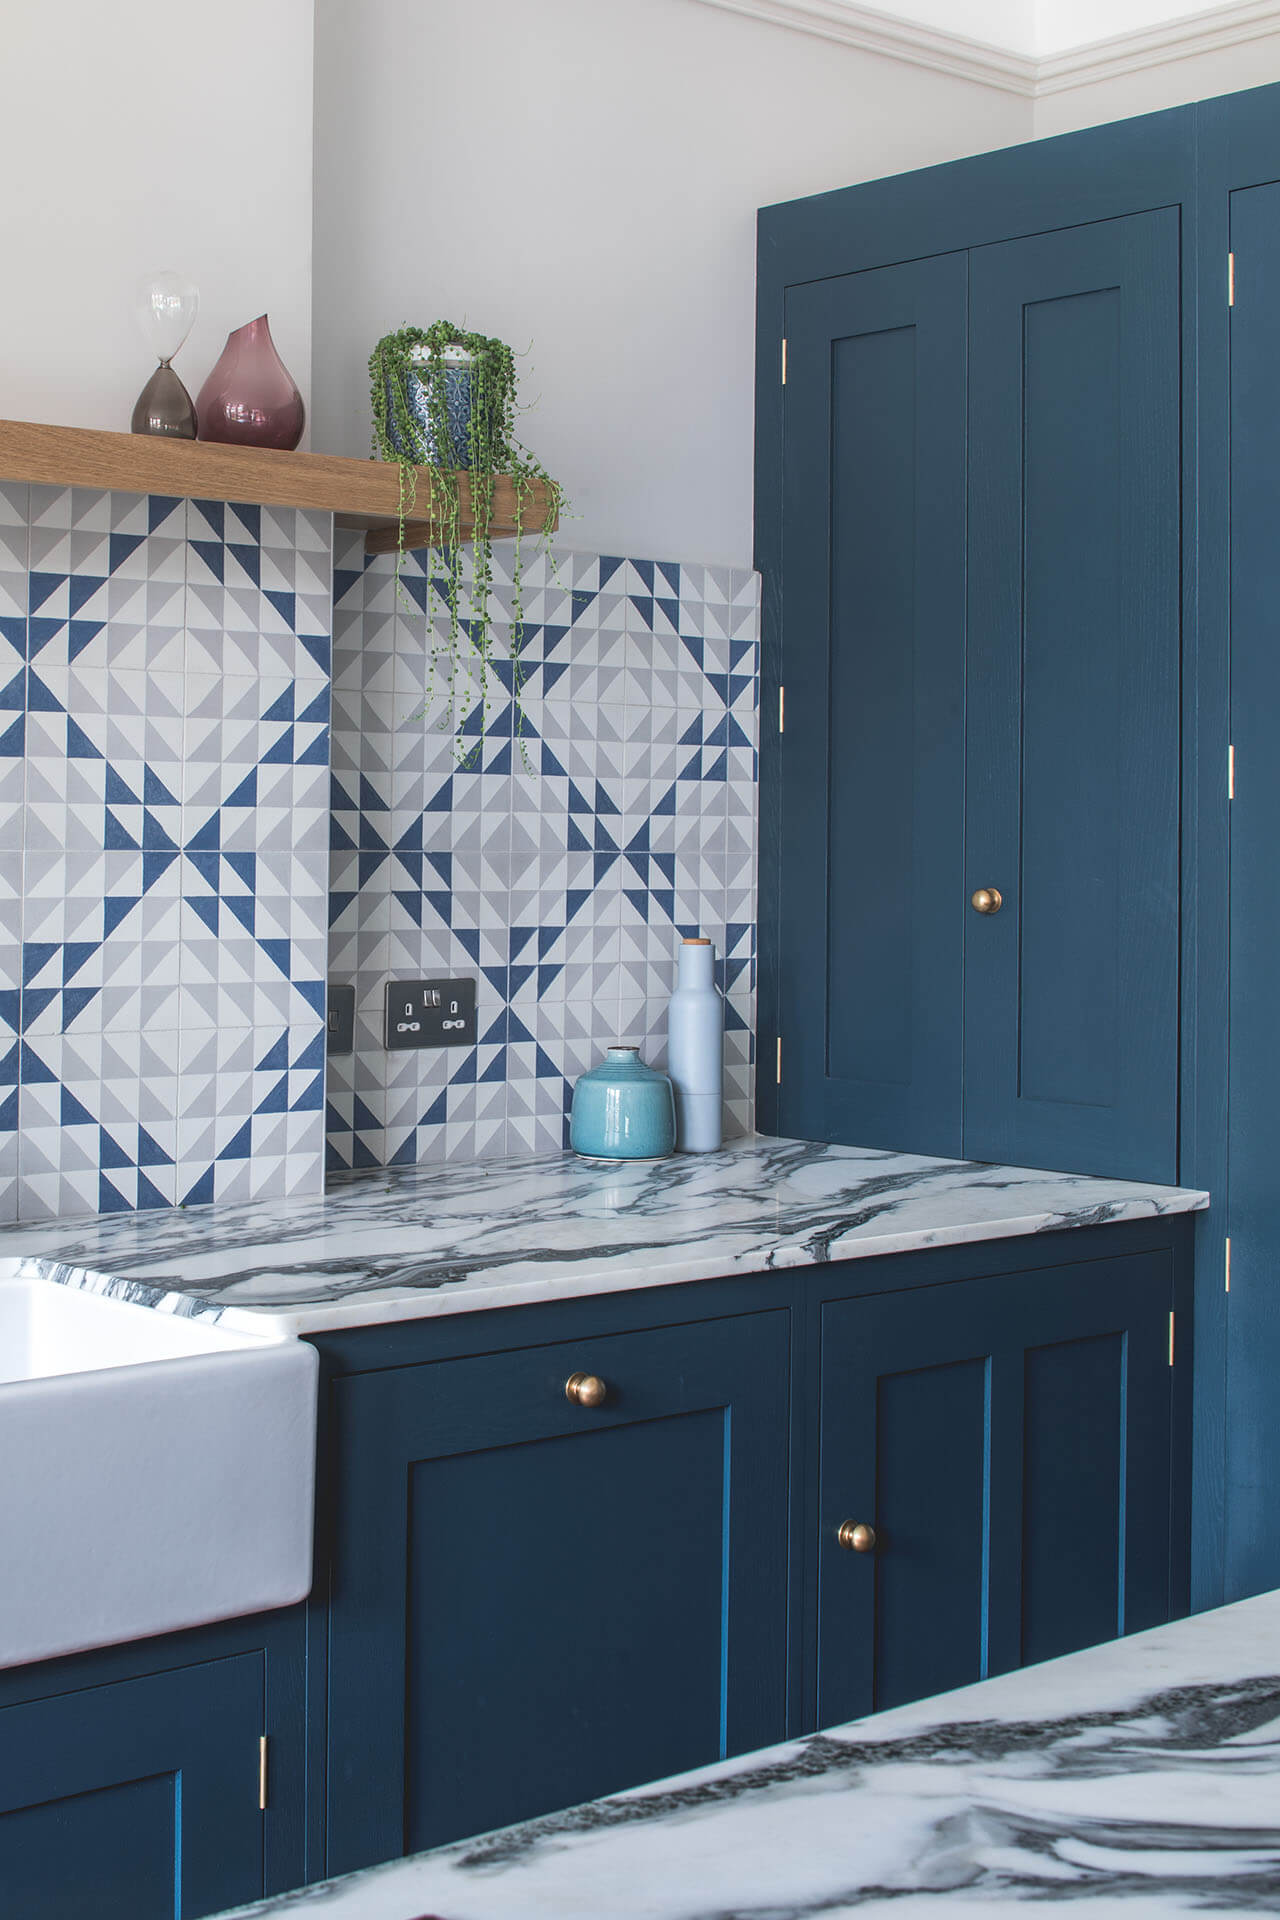 Dark blue geometric kitchen with tall cabinets and marble worktop